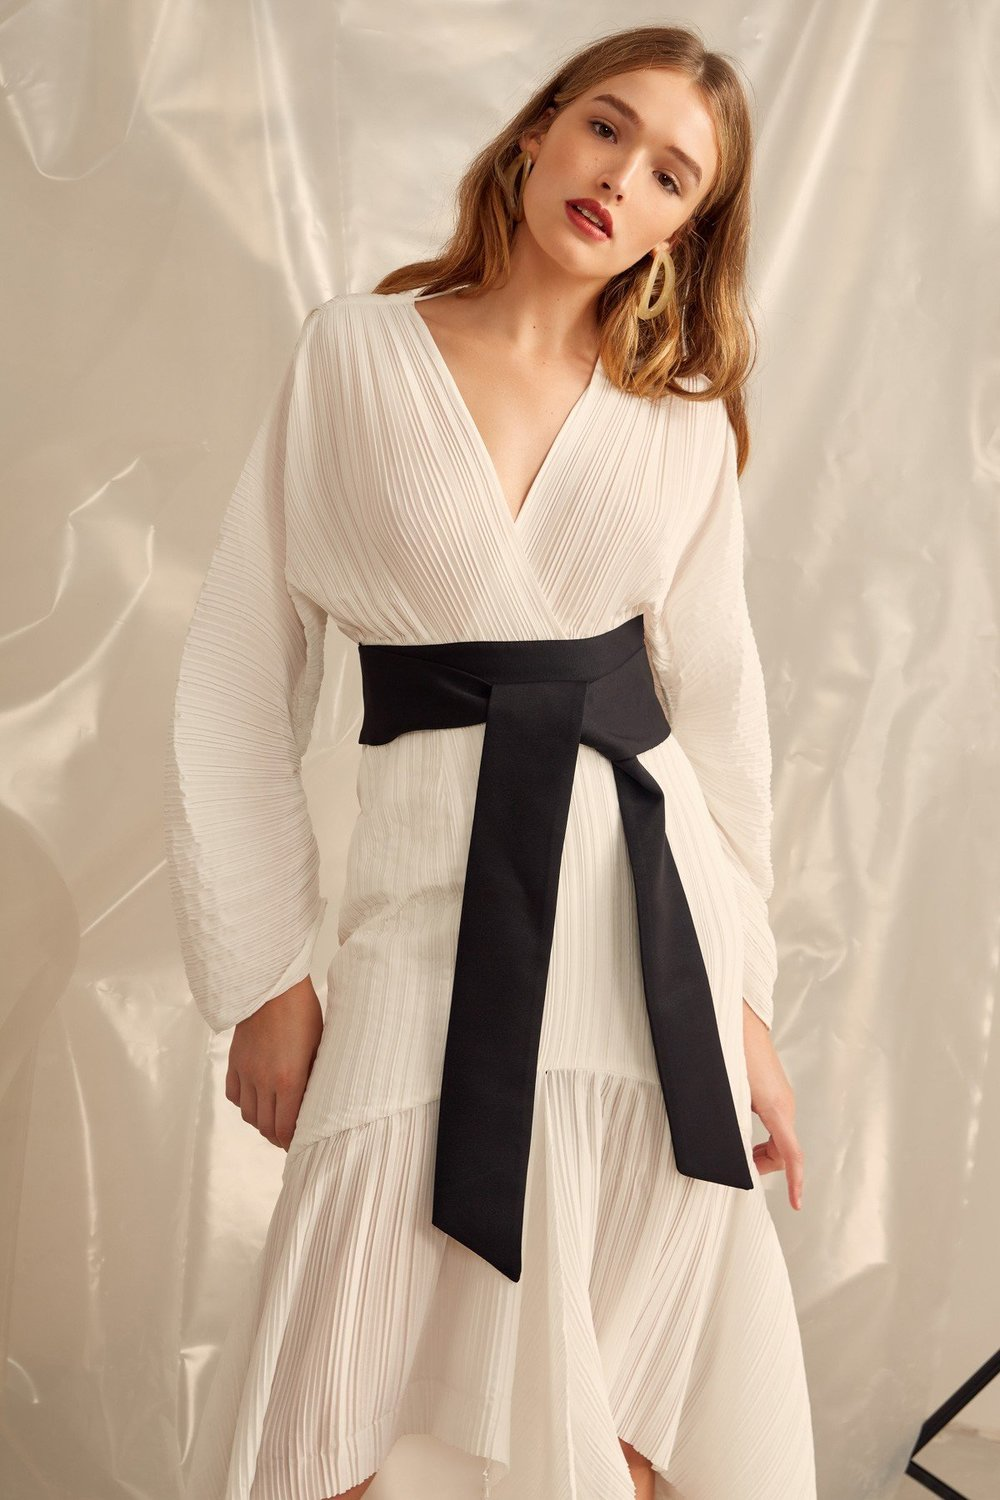 Decided Dress - C/MEO Collective